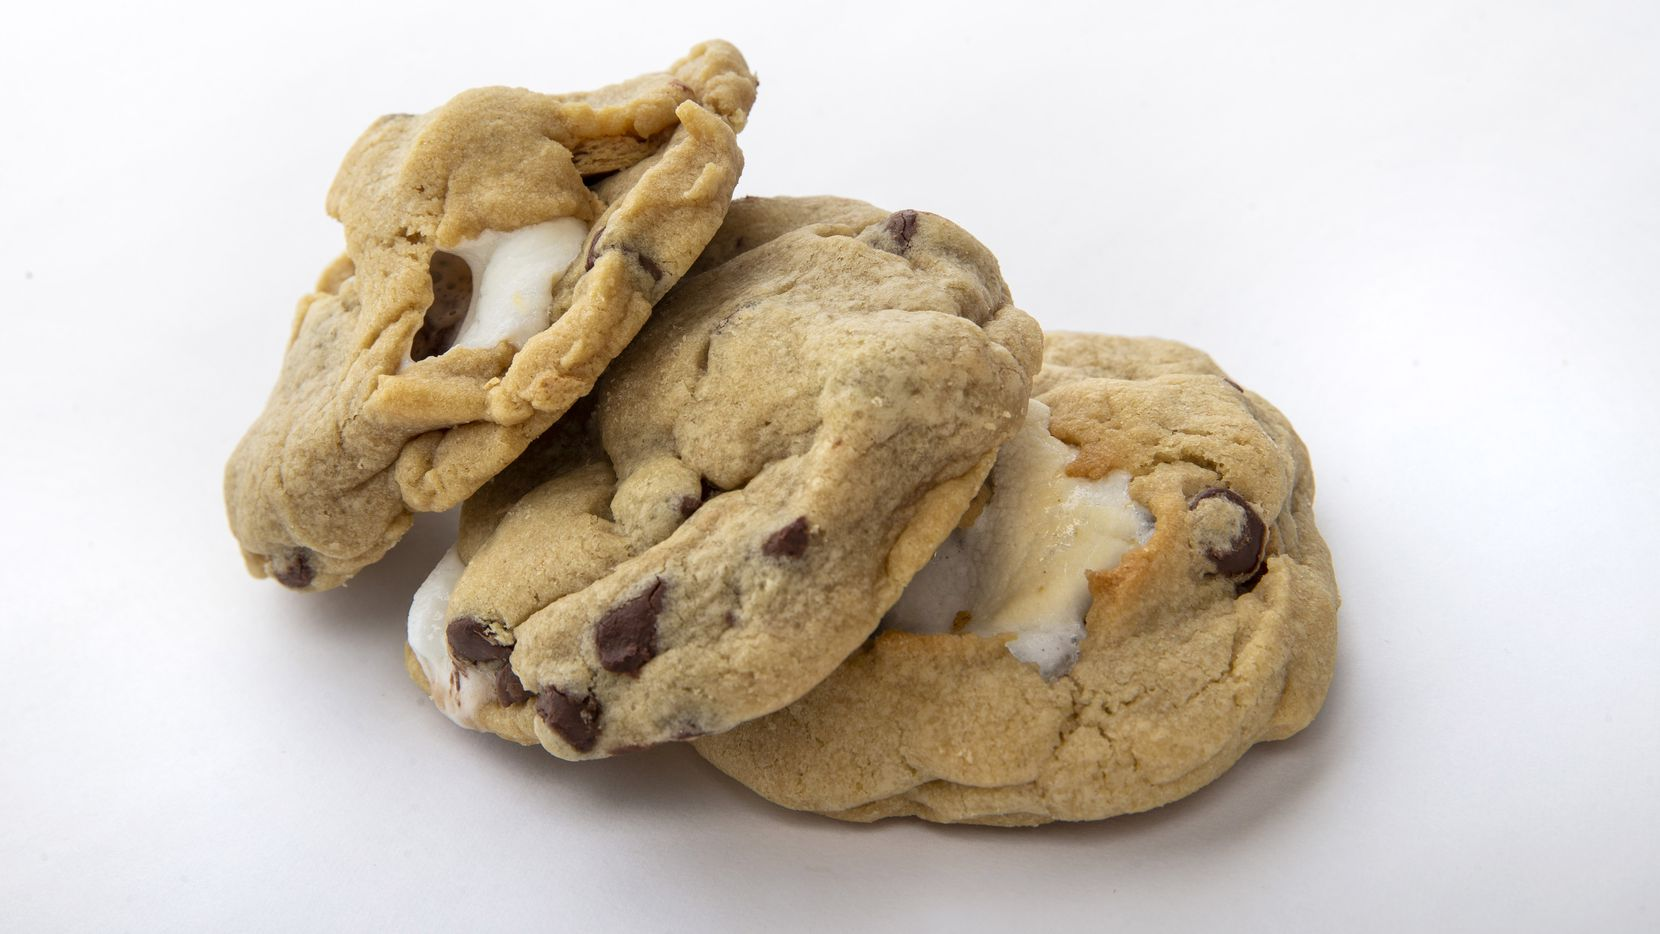 The s'mores chocolate chip cookie made by Luna Hartgrove won second place in the kid's choice cookie category of the 24th annual Holiday Cookie Contest hosted by The Dallas Morning News.